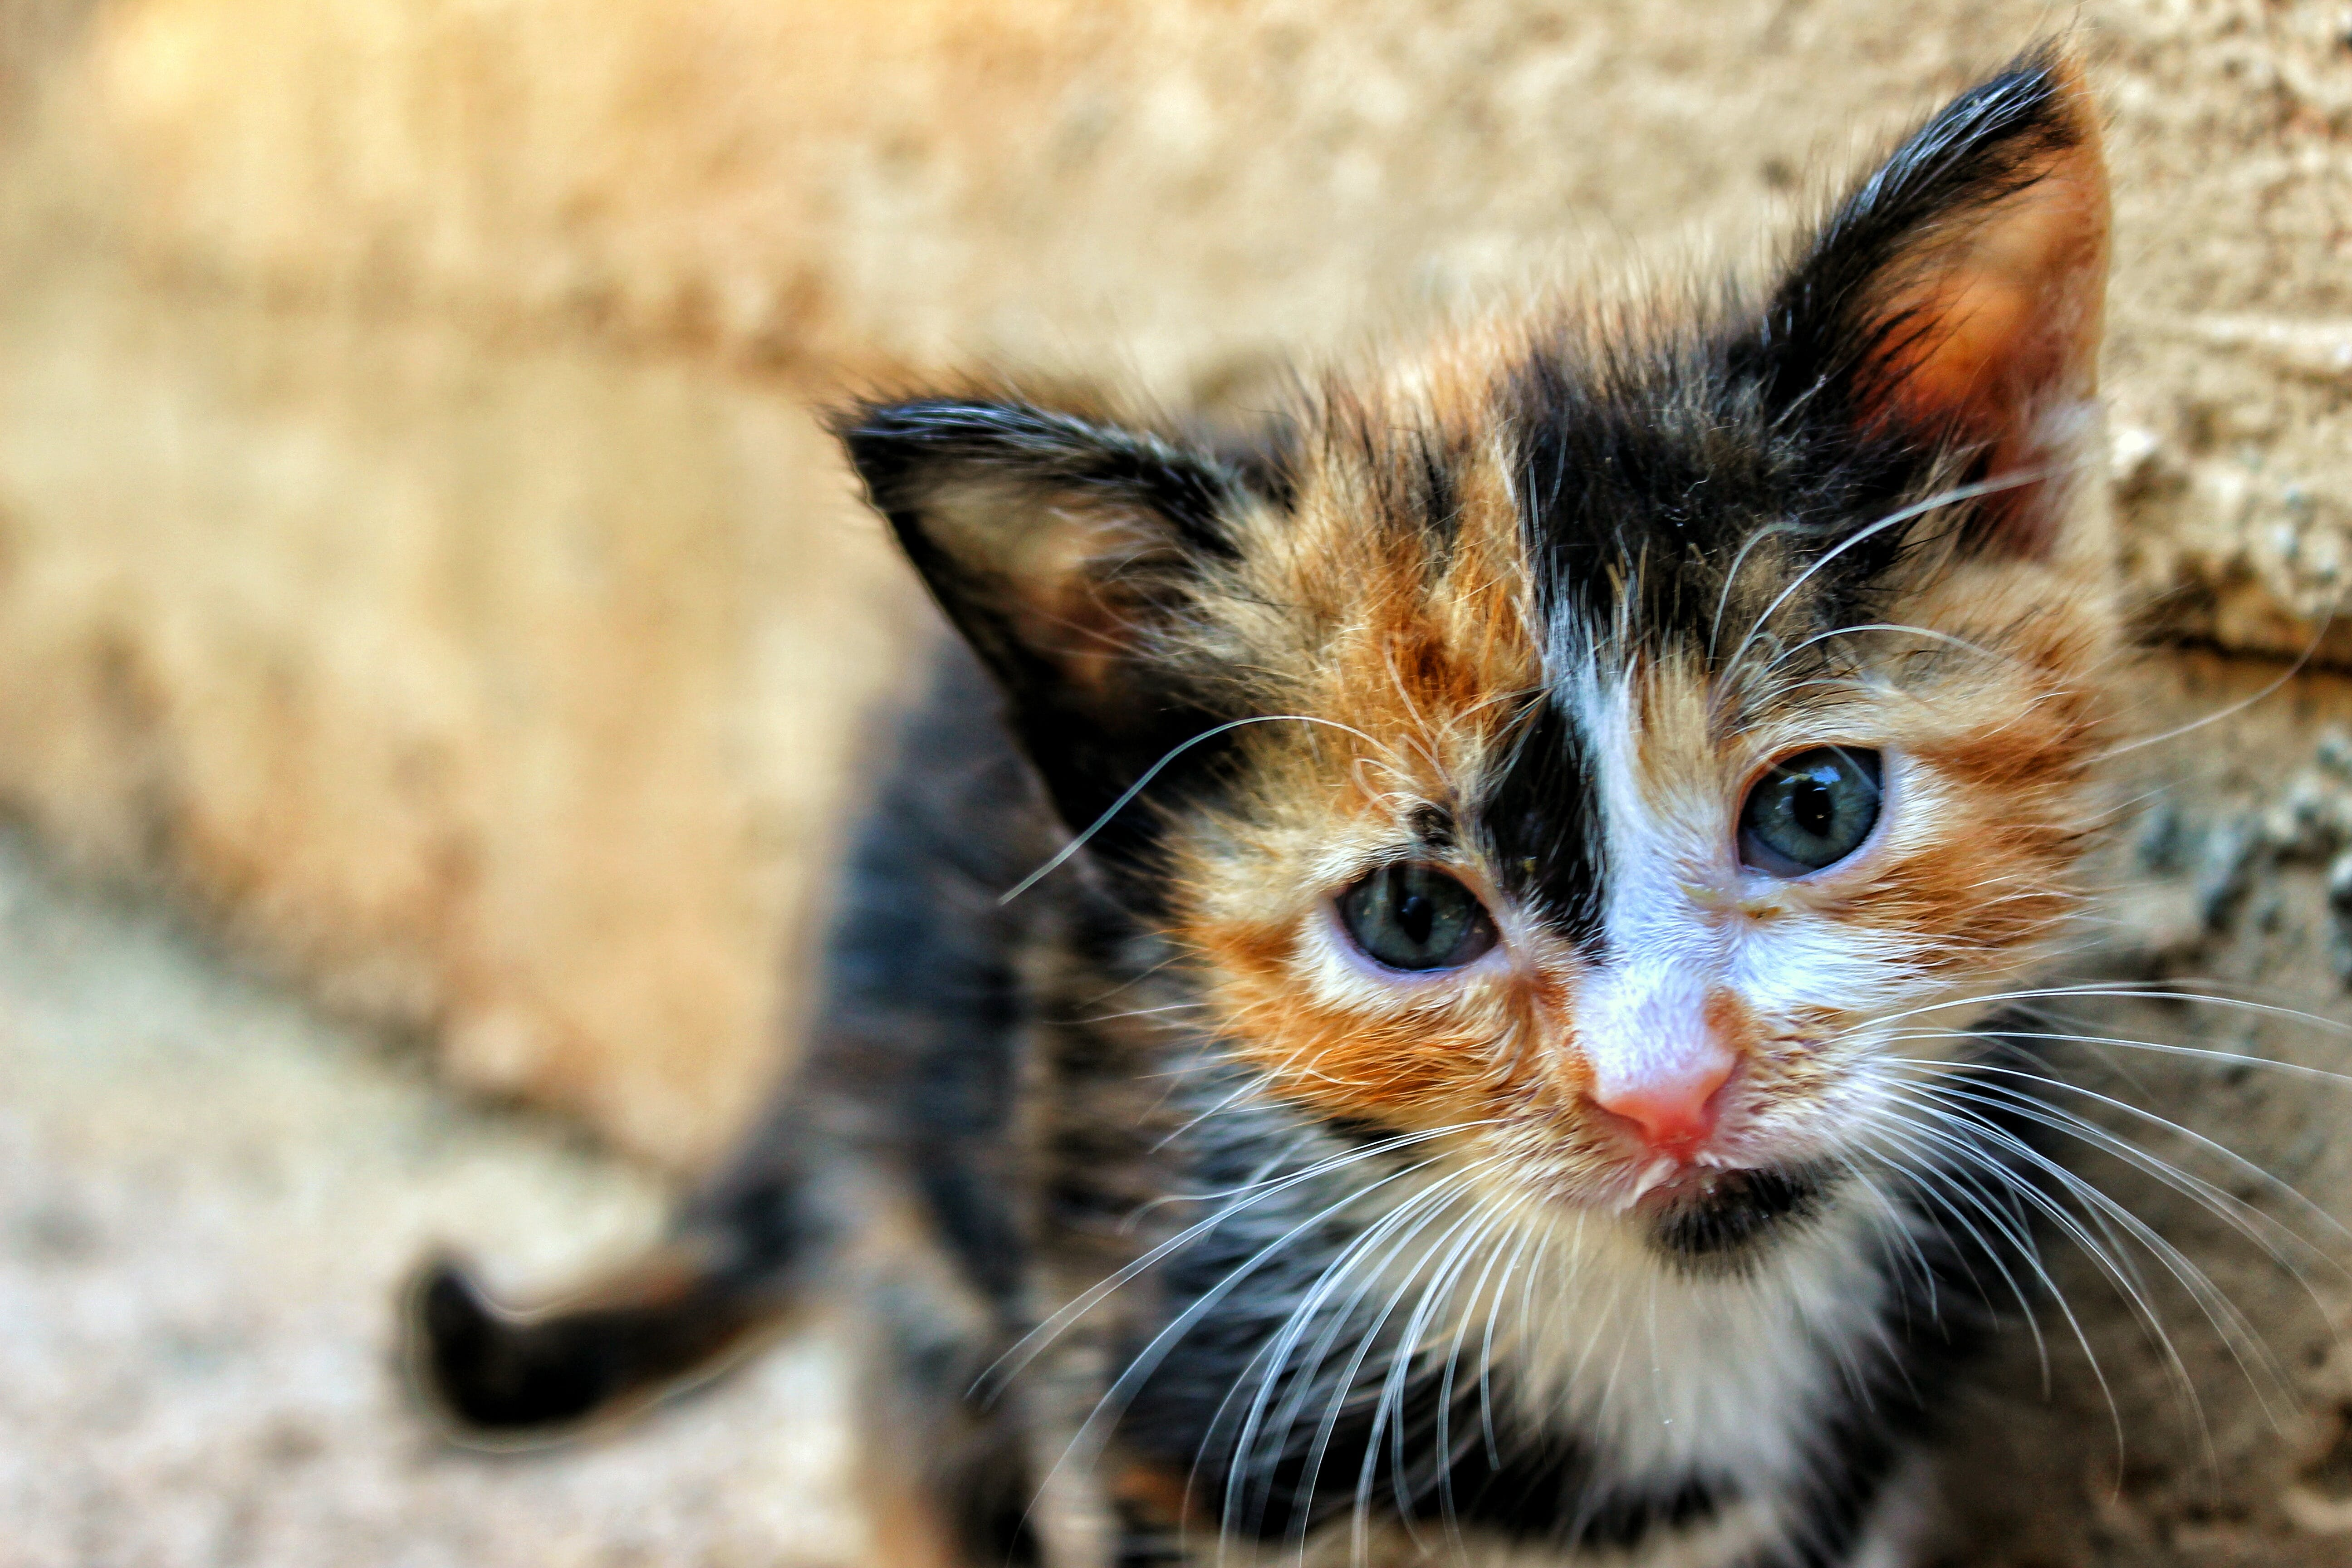 Close-up Photography of Tortoiseshell Kitten